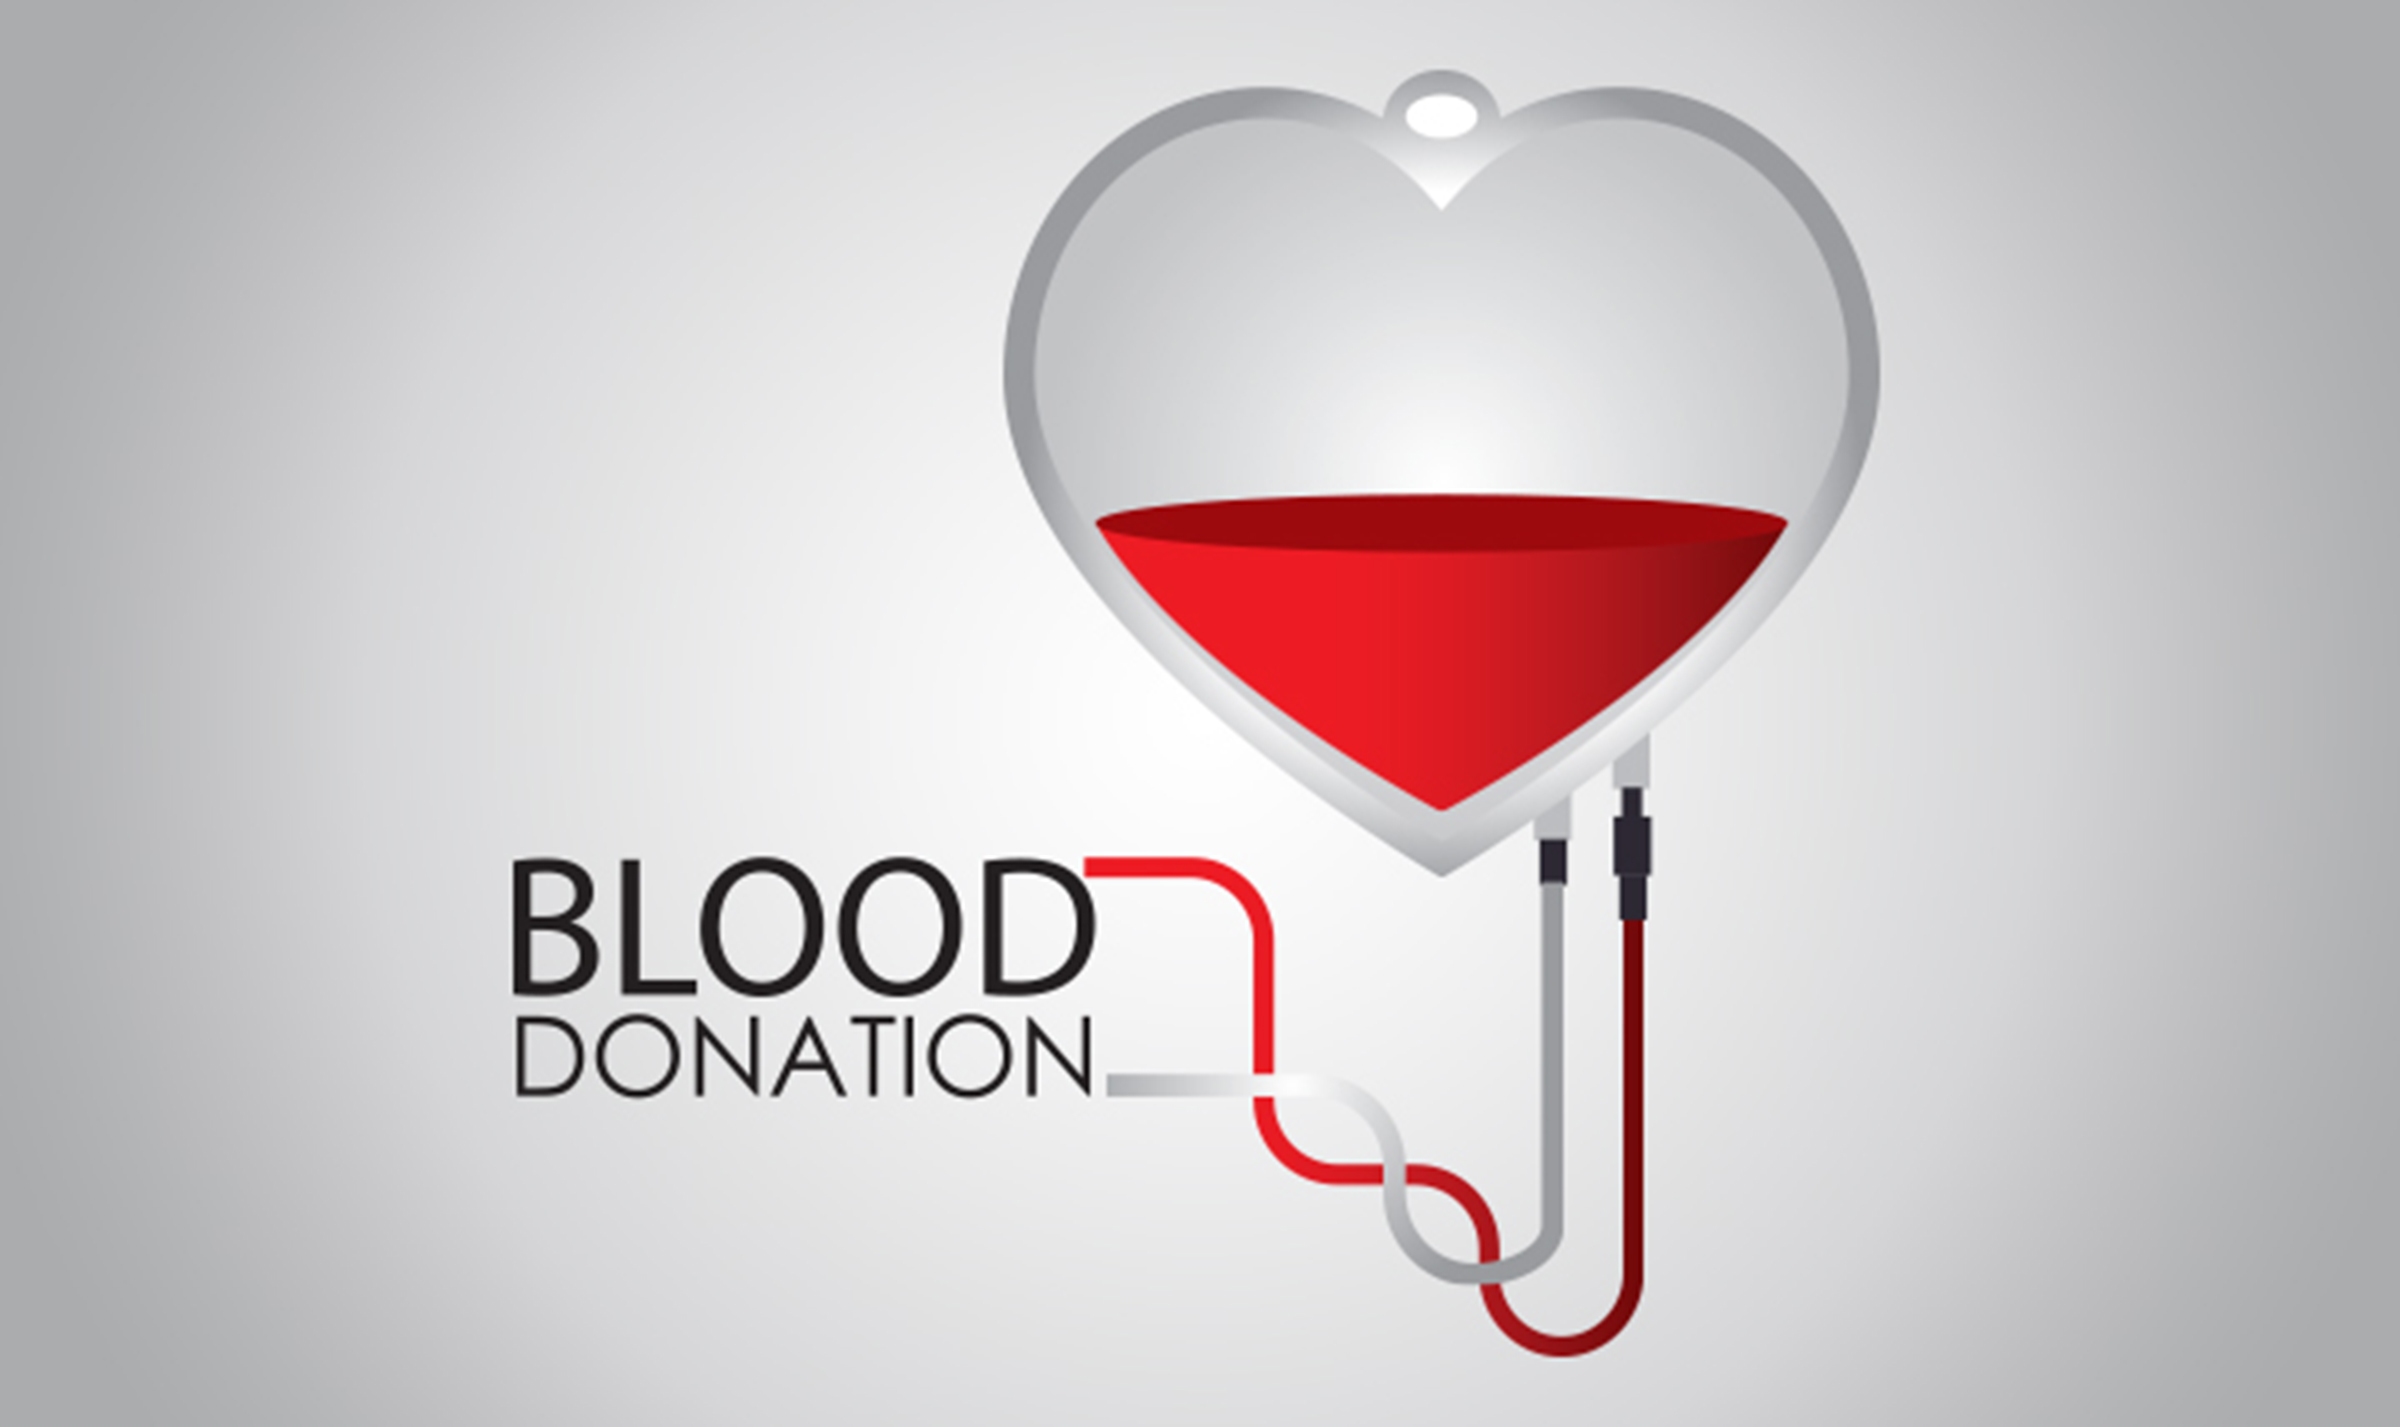 4_types_of_Foods_that_you_should_eat_drink_and_3_types_to_avoid_after_blood_donations